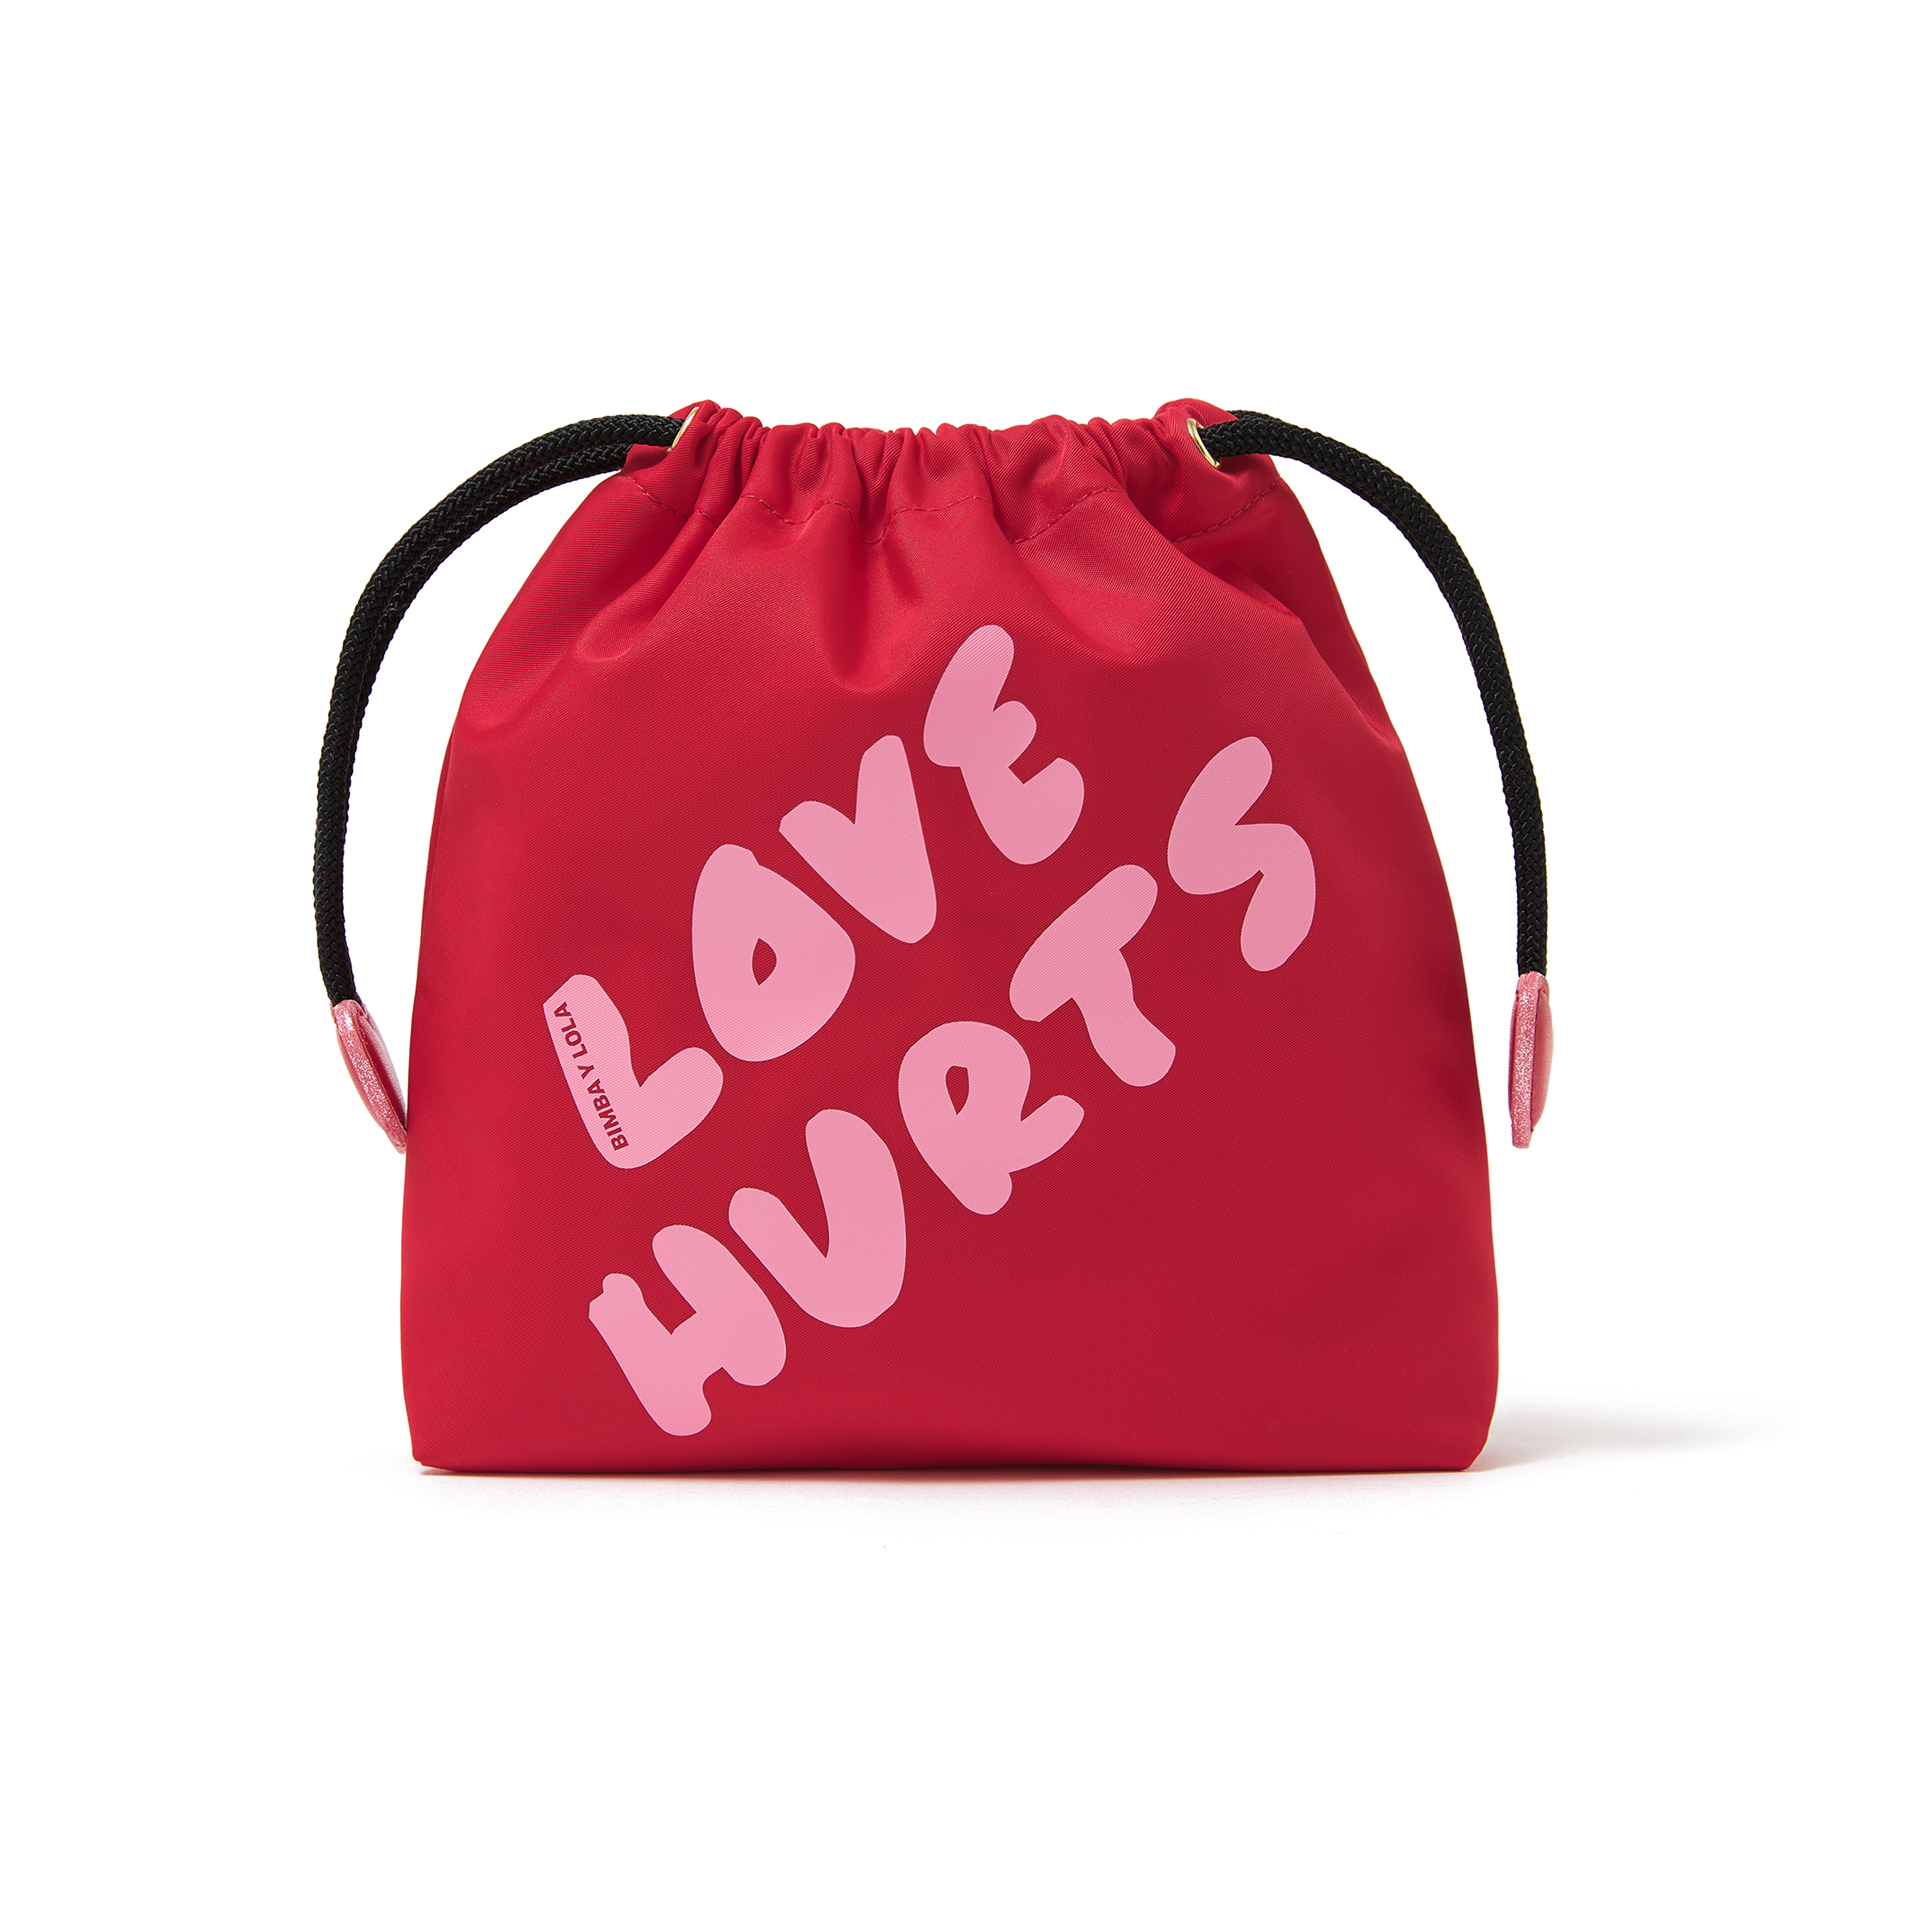 Red Love Pleat Make-Up Case, $66